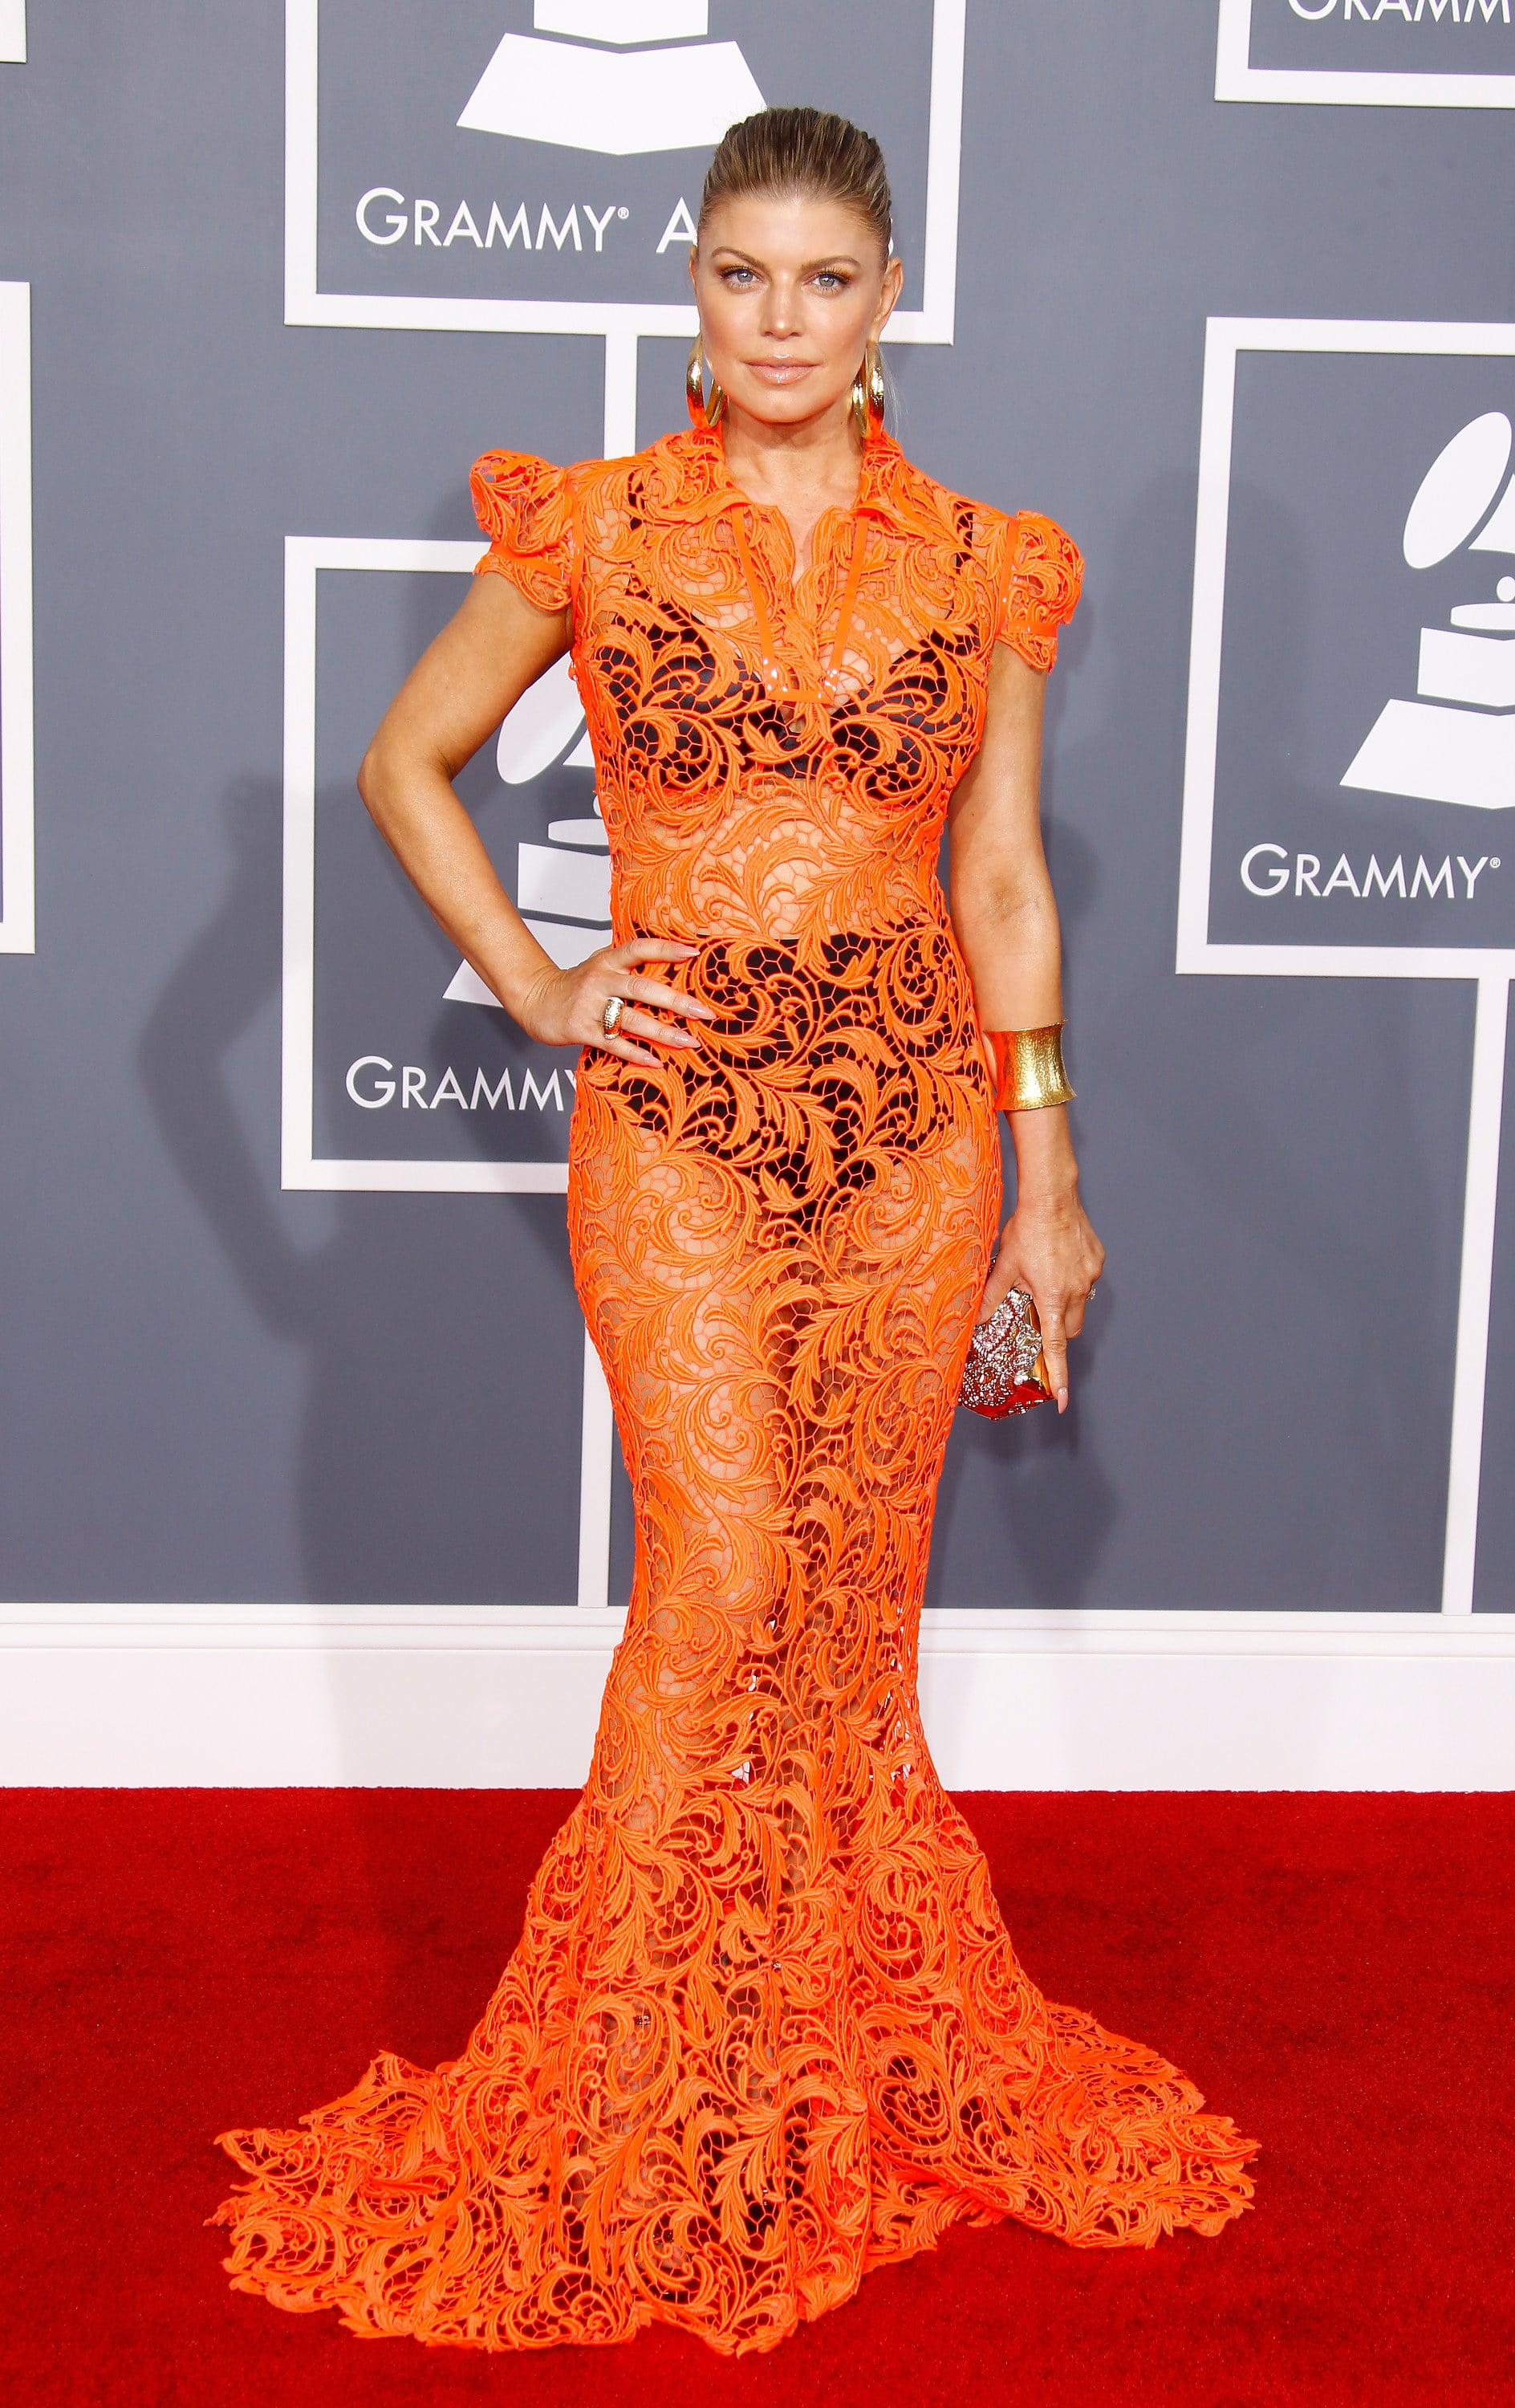 Fergie donned an orange lace Roberto Cavalli gown on the red carpet in 2012.